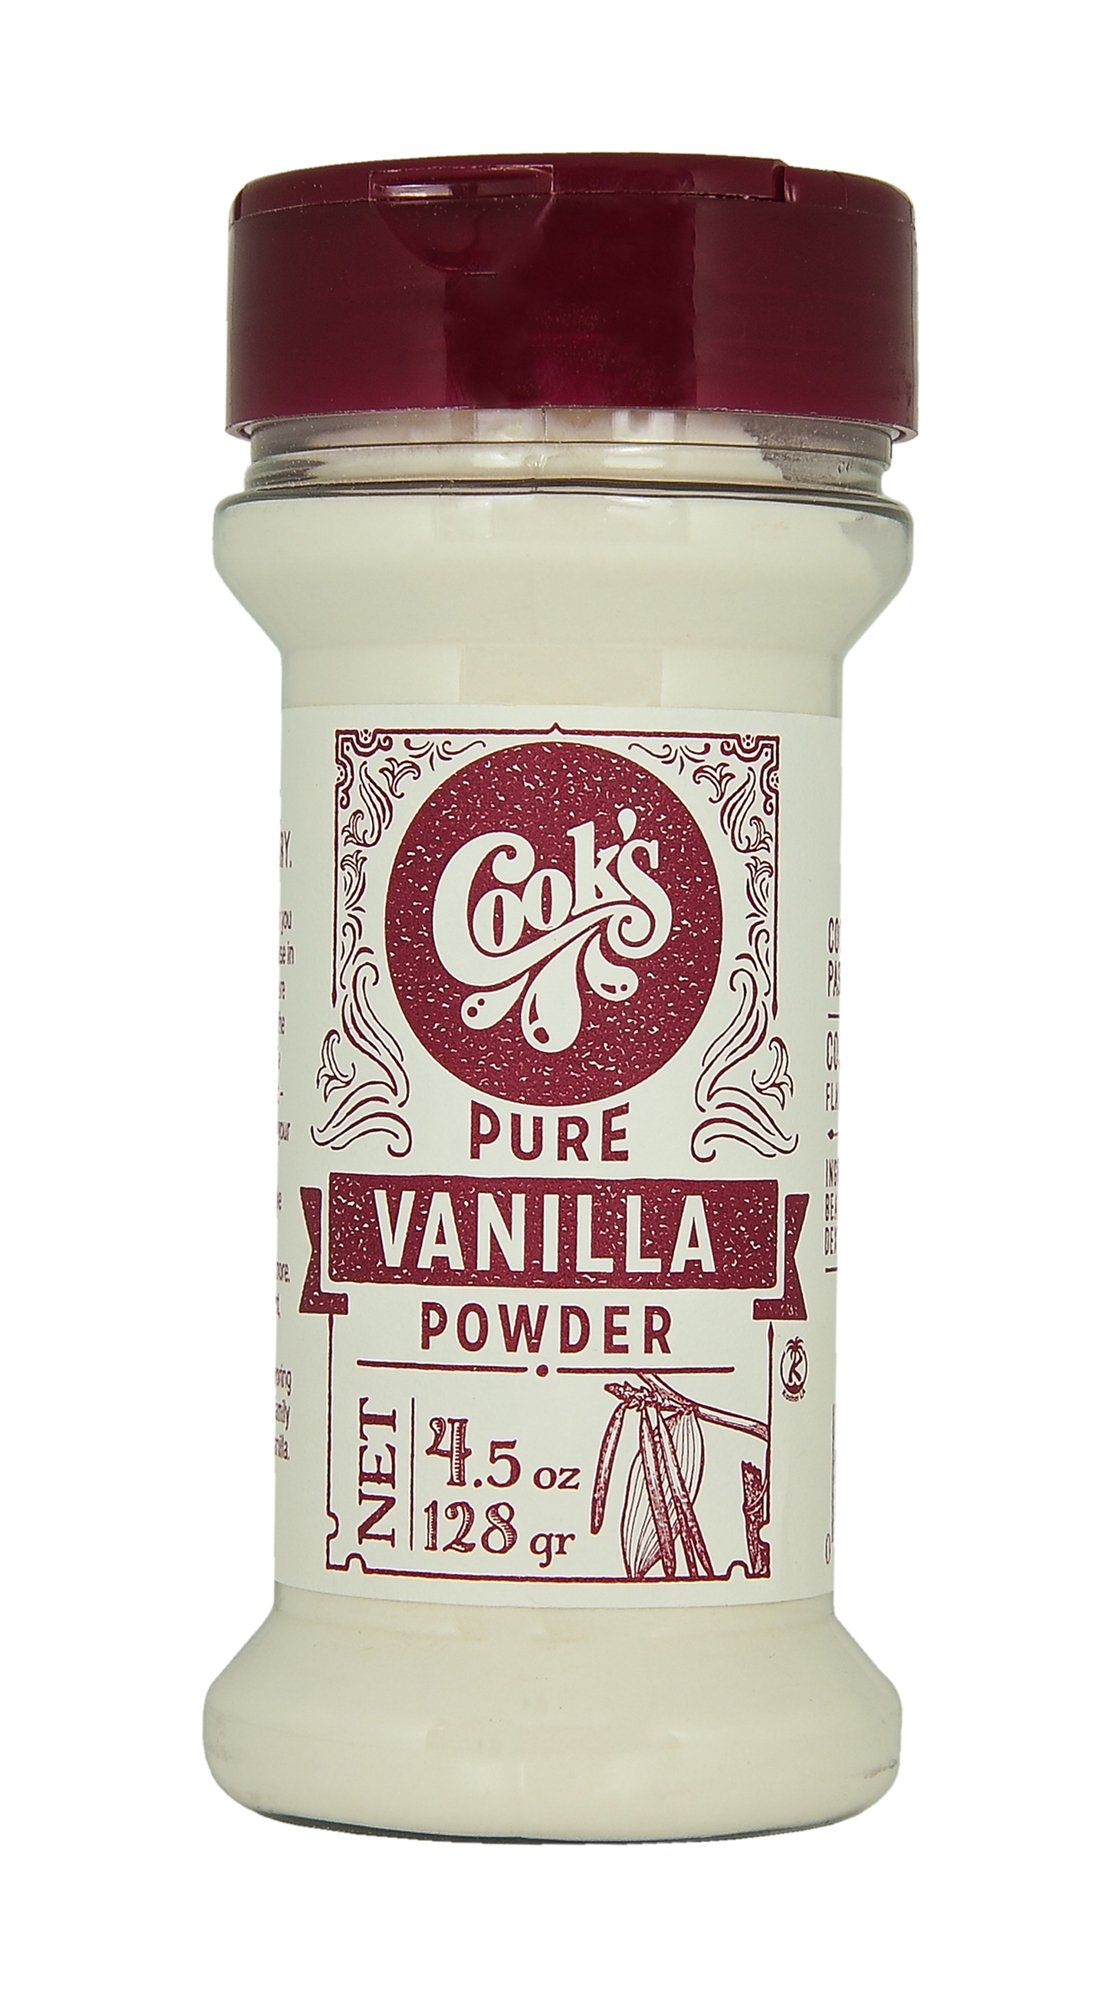 Cook's Premium Quality Pure Vanilla Powder, 4.5 oz.